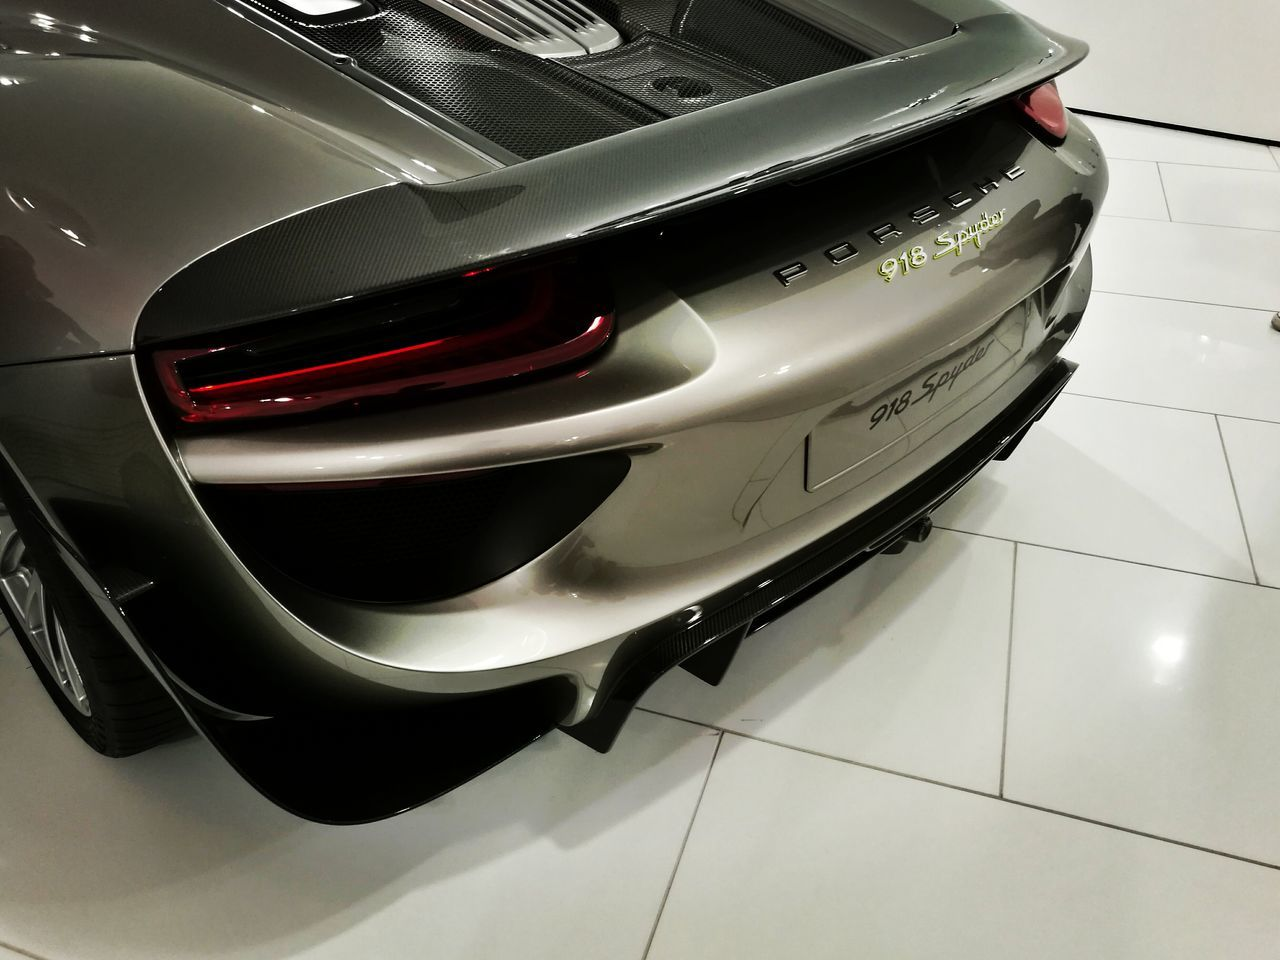 Porsche 918 Spyder Close-up Vehicle Hood Porsche Museum Stuttgart Beautiful Supercarspotting Specialedition HuaweiP9